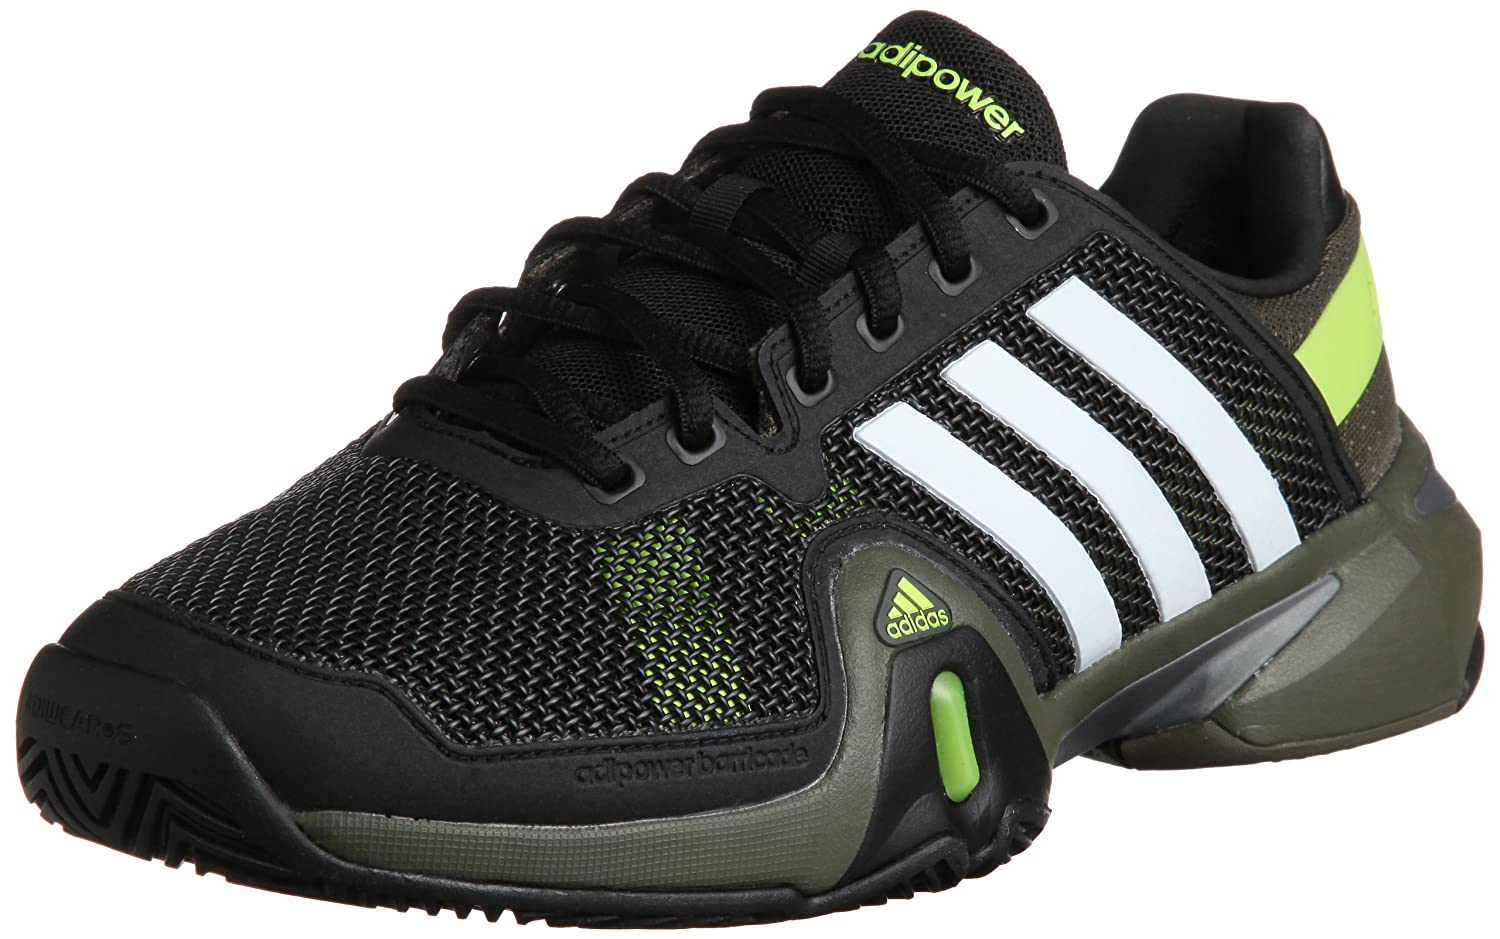 newest 1d0c7 6aa77 Adidas Adipower Barricade 8 Tennis Shoes - 6  Amazon.co.uk  Shoes   Bags